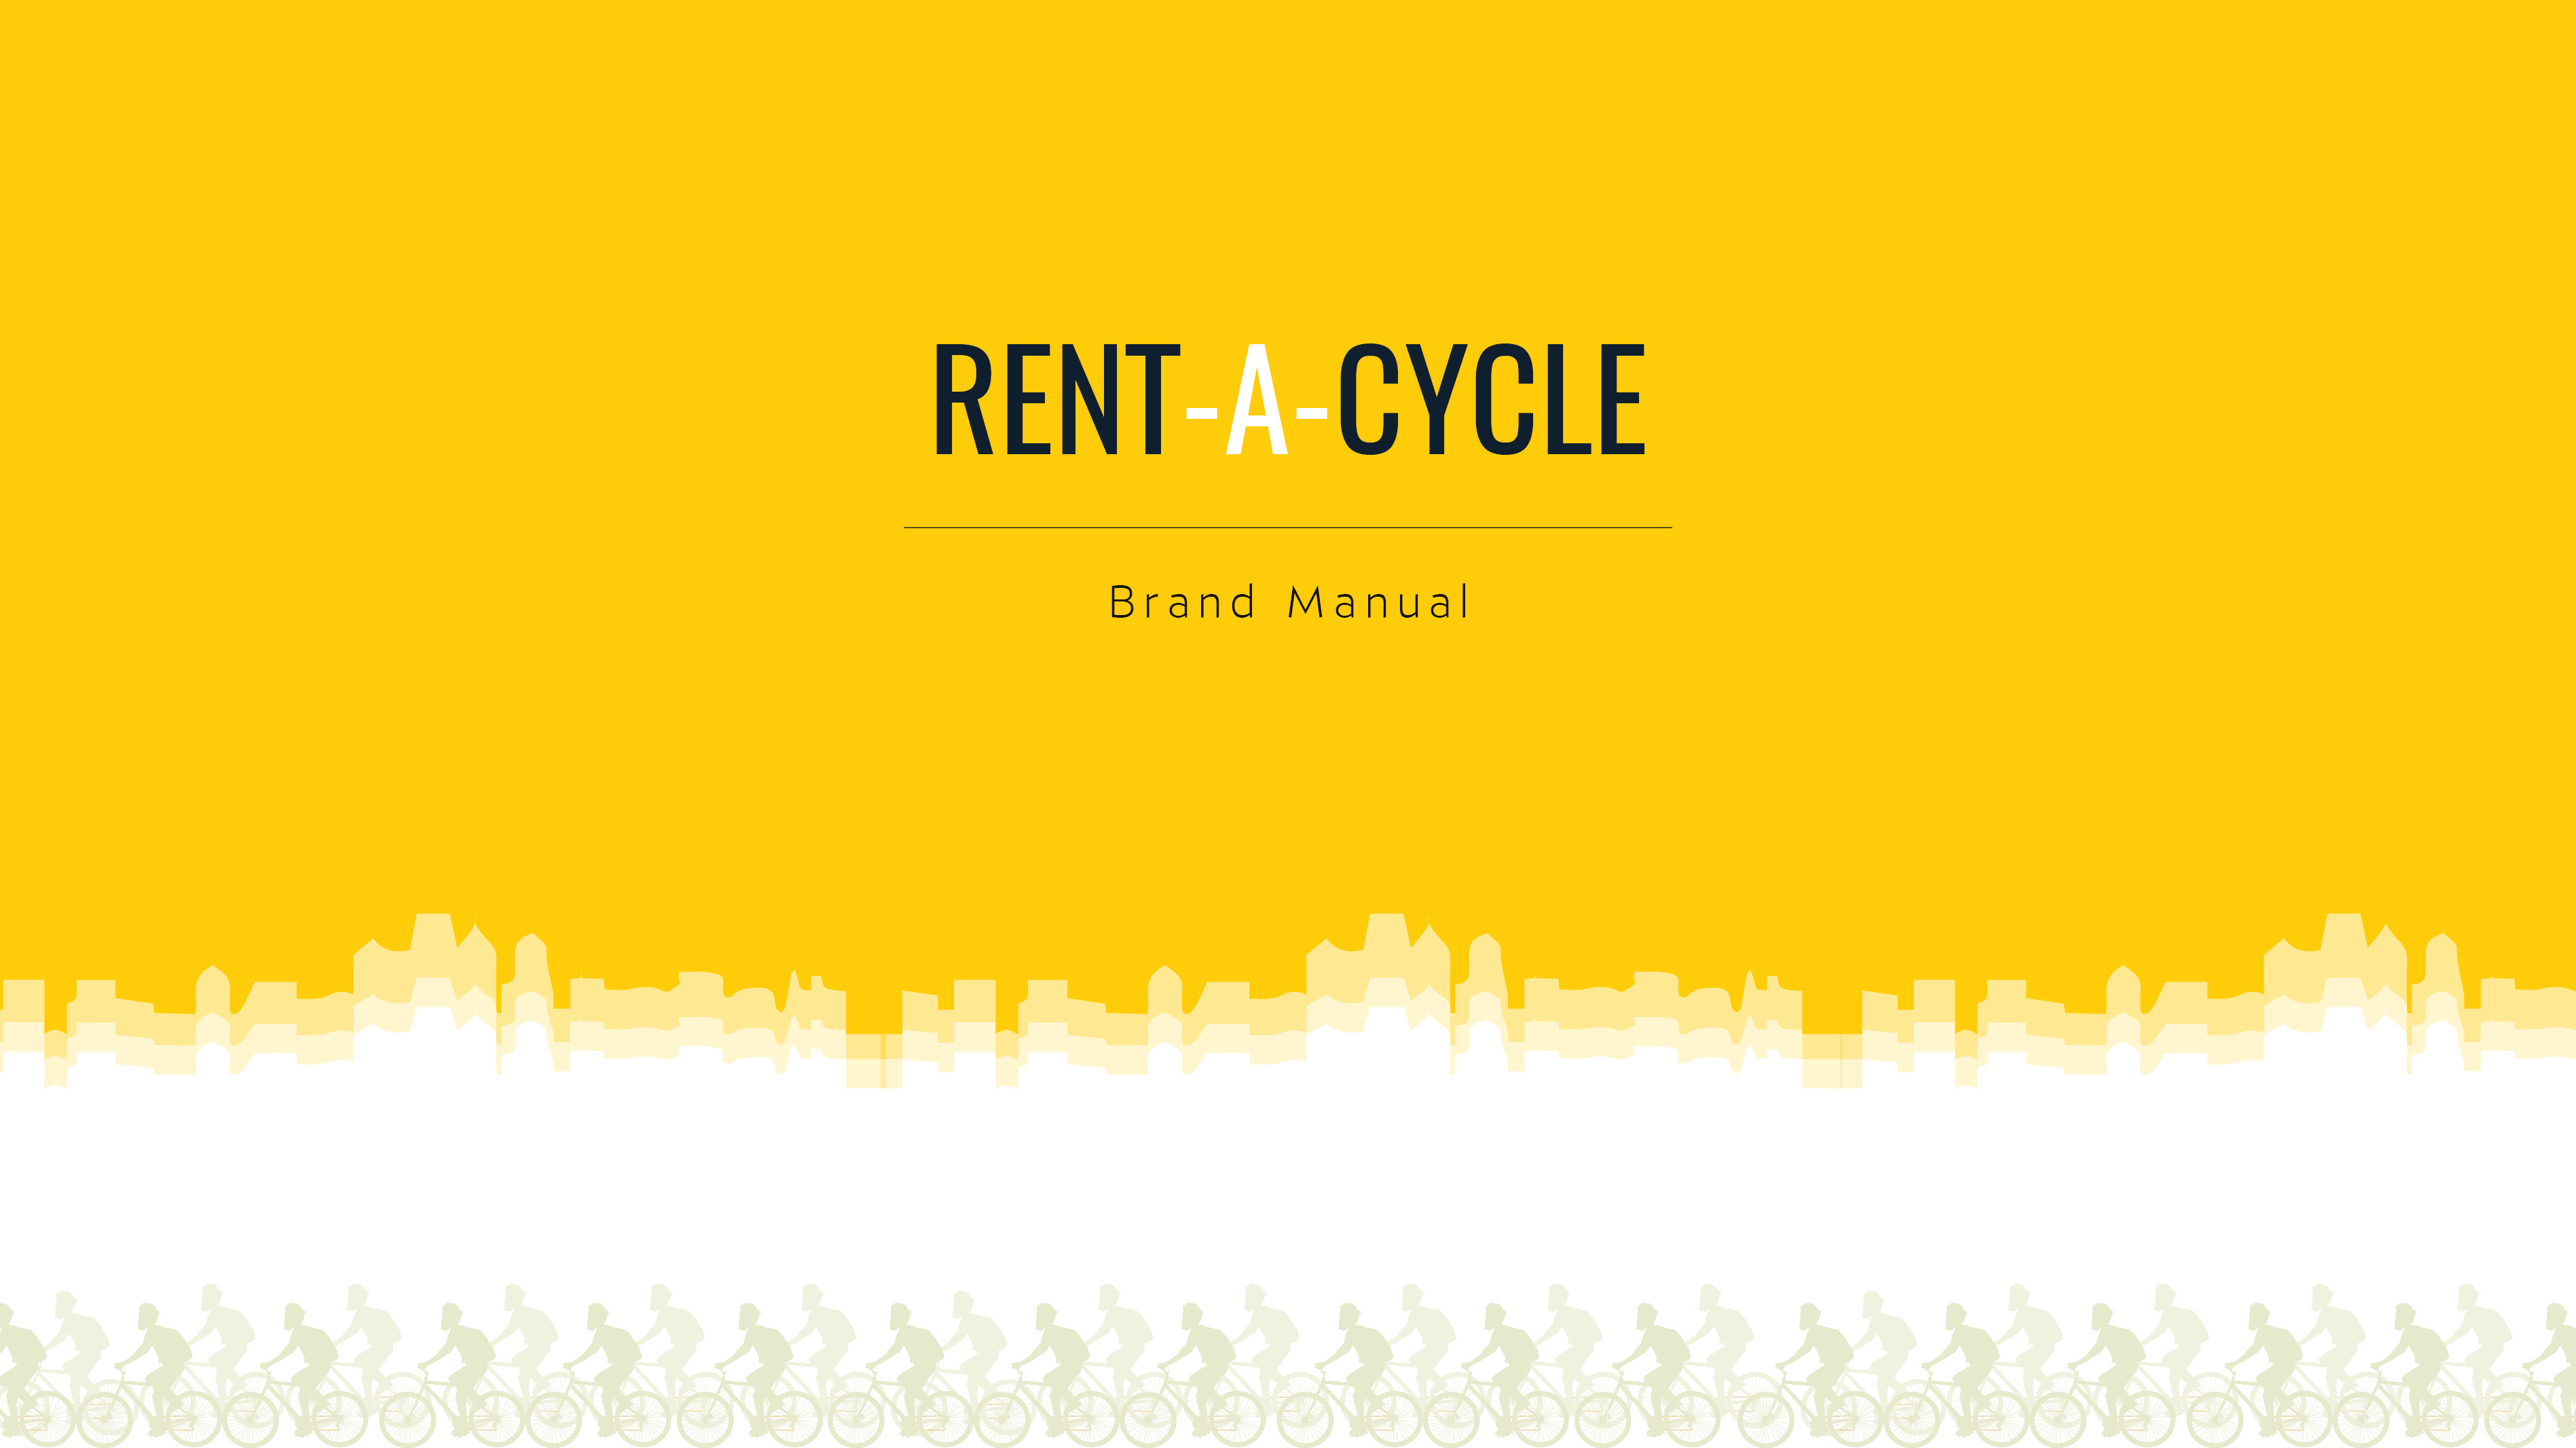 rent-a-cycle-brand-manual